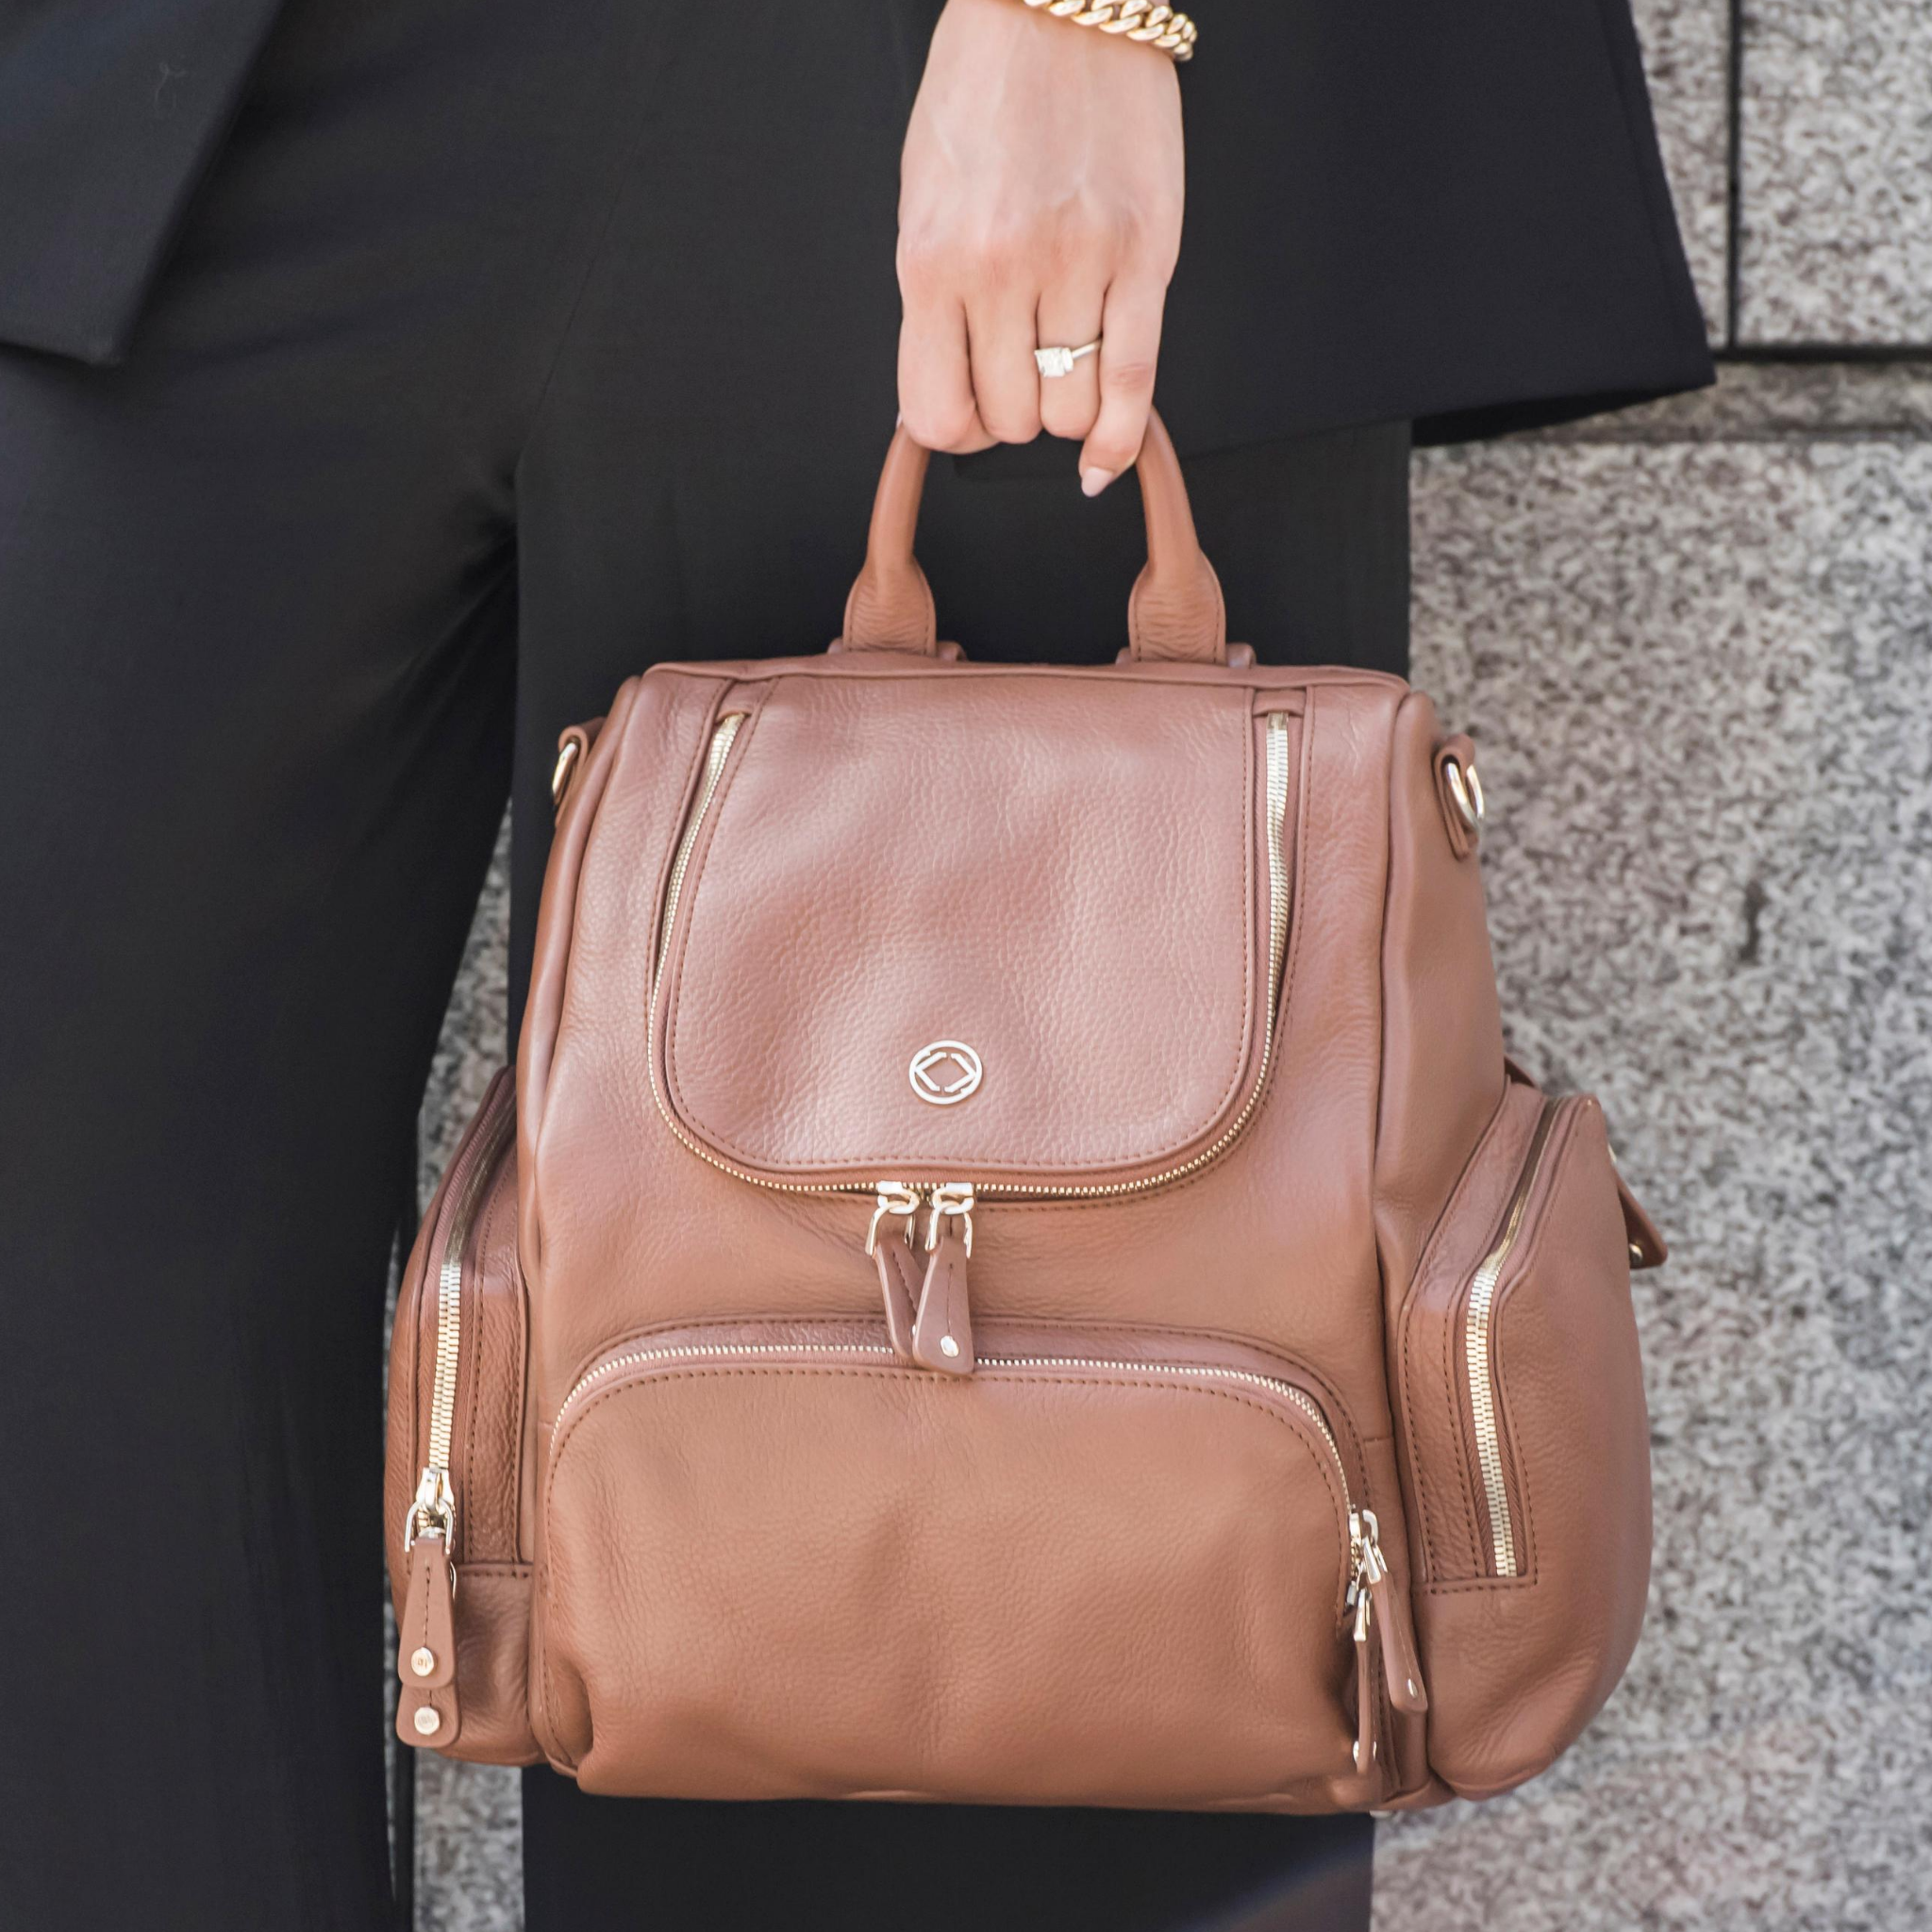 Be ready for anything with our women's tan leather backpack. Practical pockets and a beautiful design make this perfect for everyday adventures.